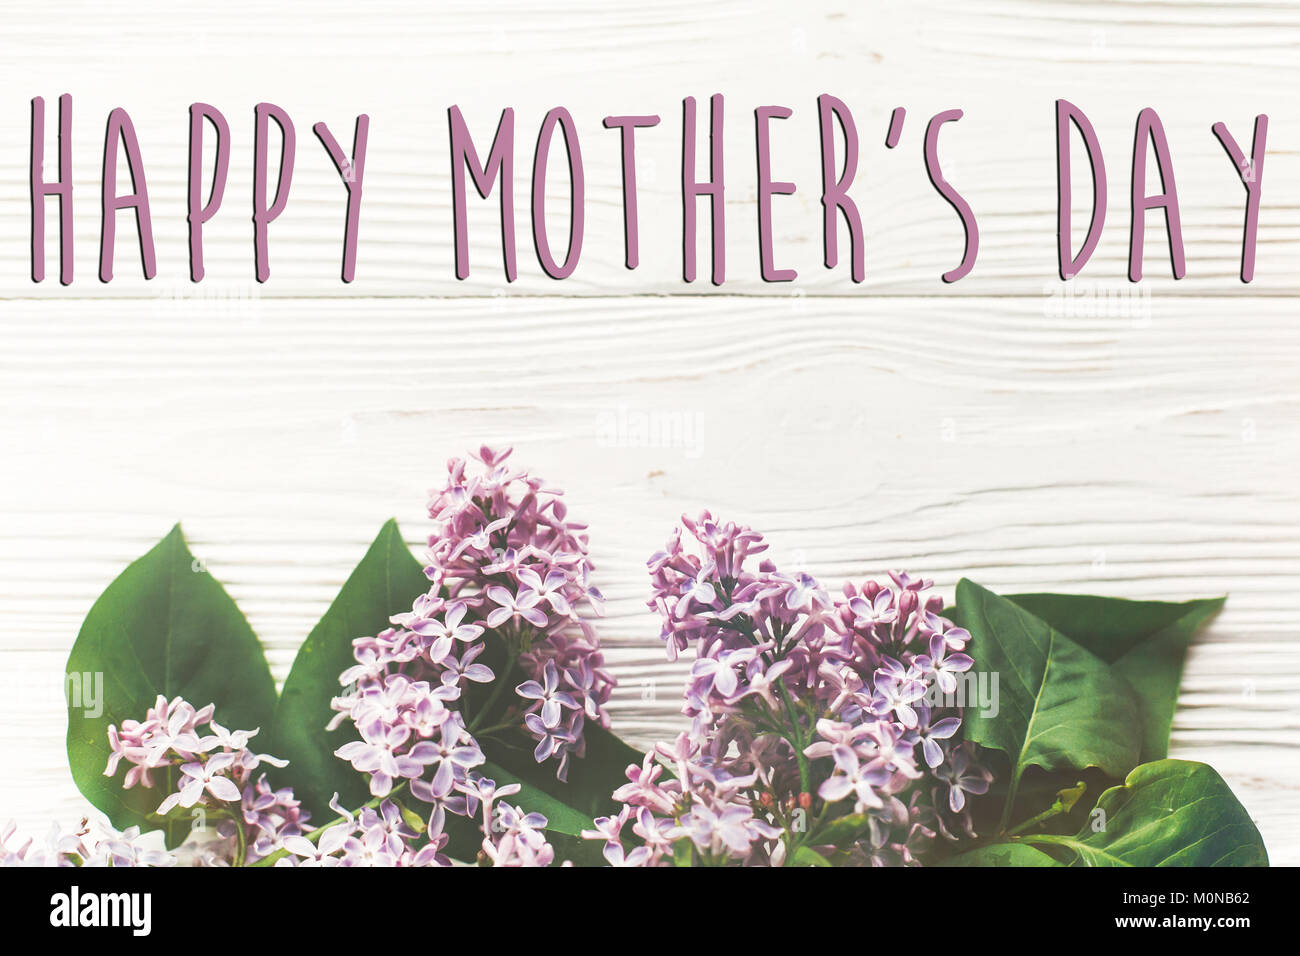 Happy mothers day text sign simple greeting card spring flat happy mothers day text sign simple greeting card spring flat lay image beautiful lilac flowers on rustic white wooden background top view space f kristyandbryce Choice Image